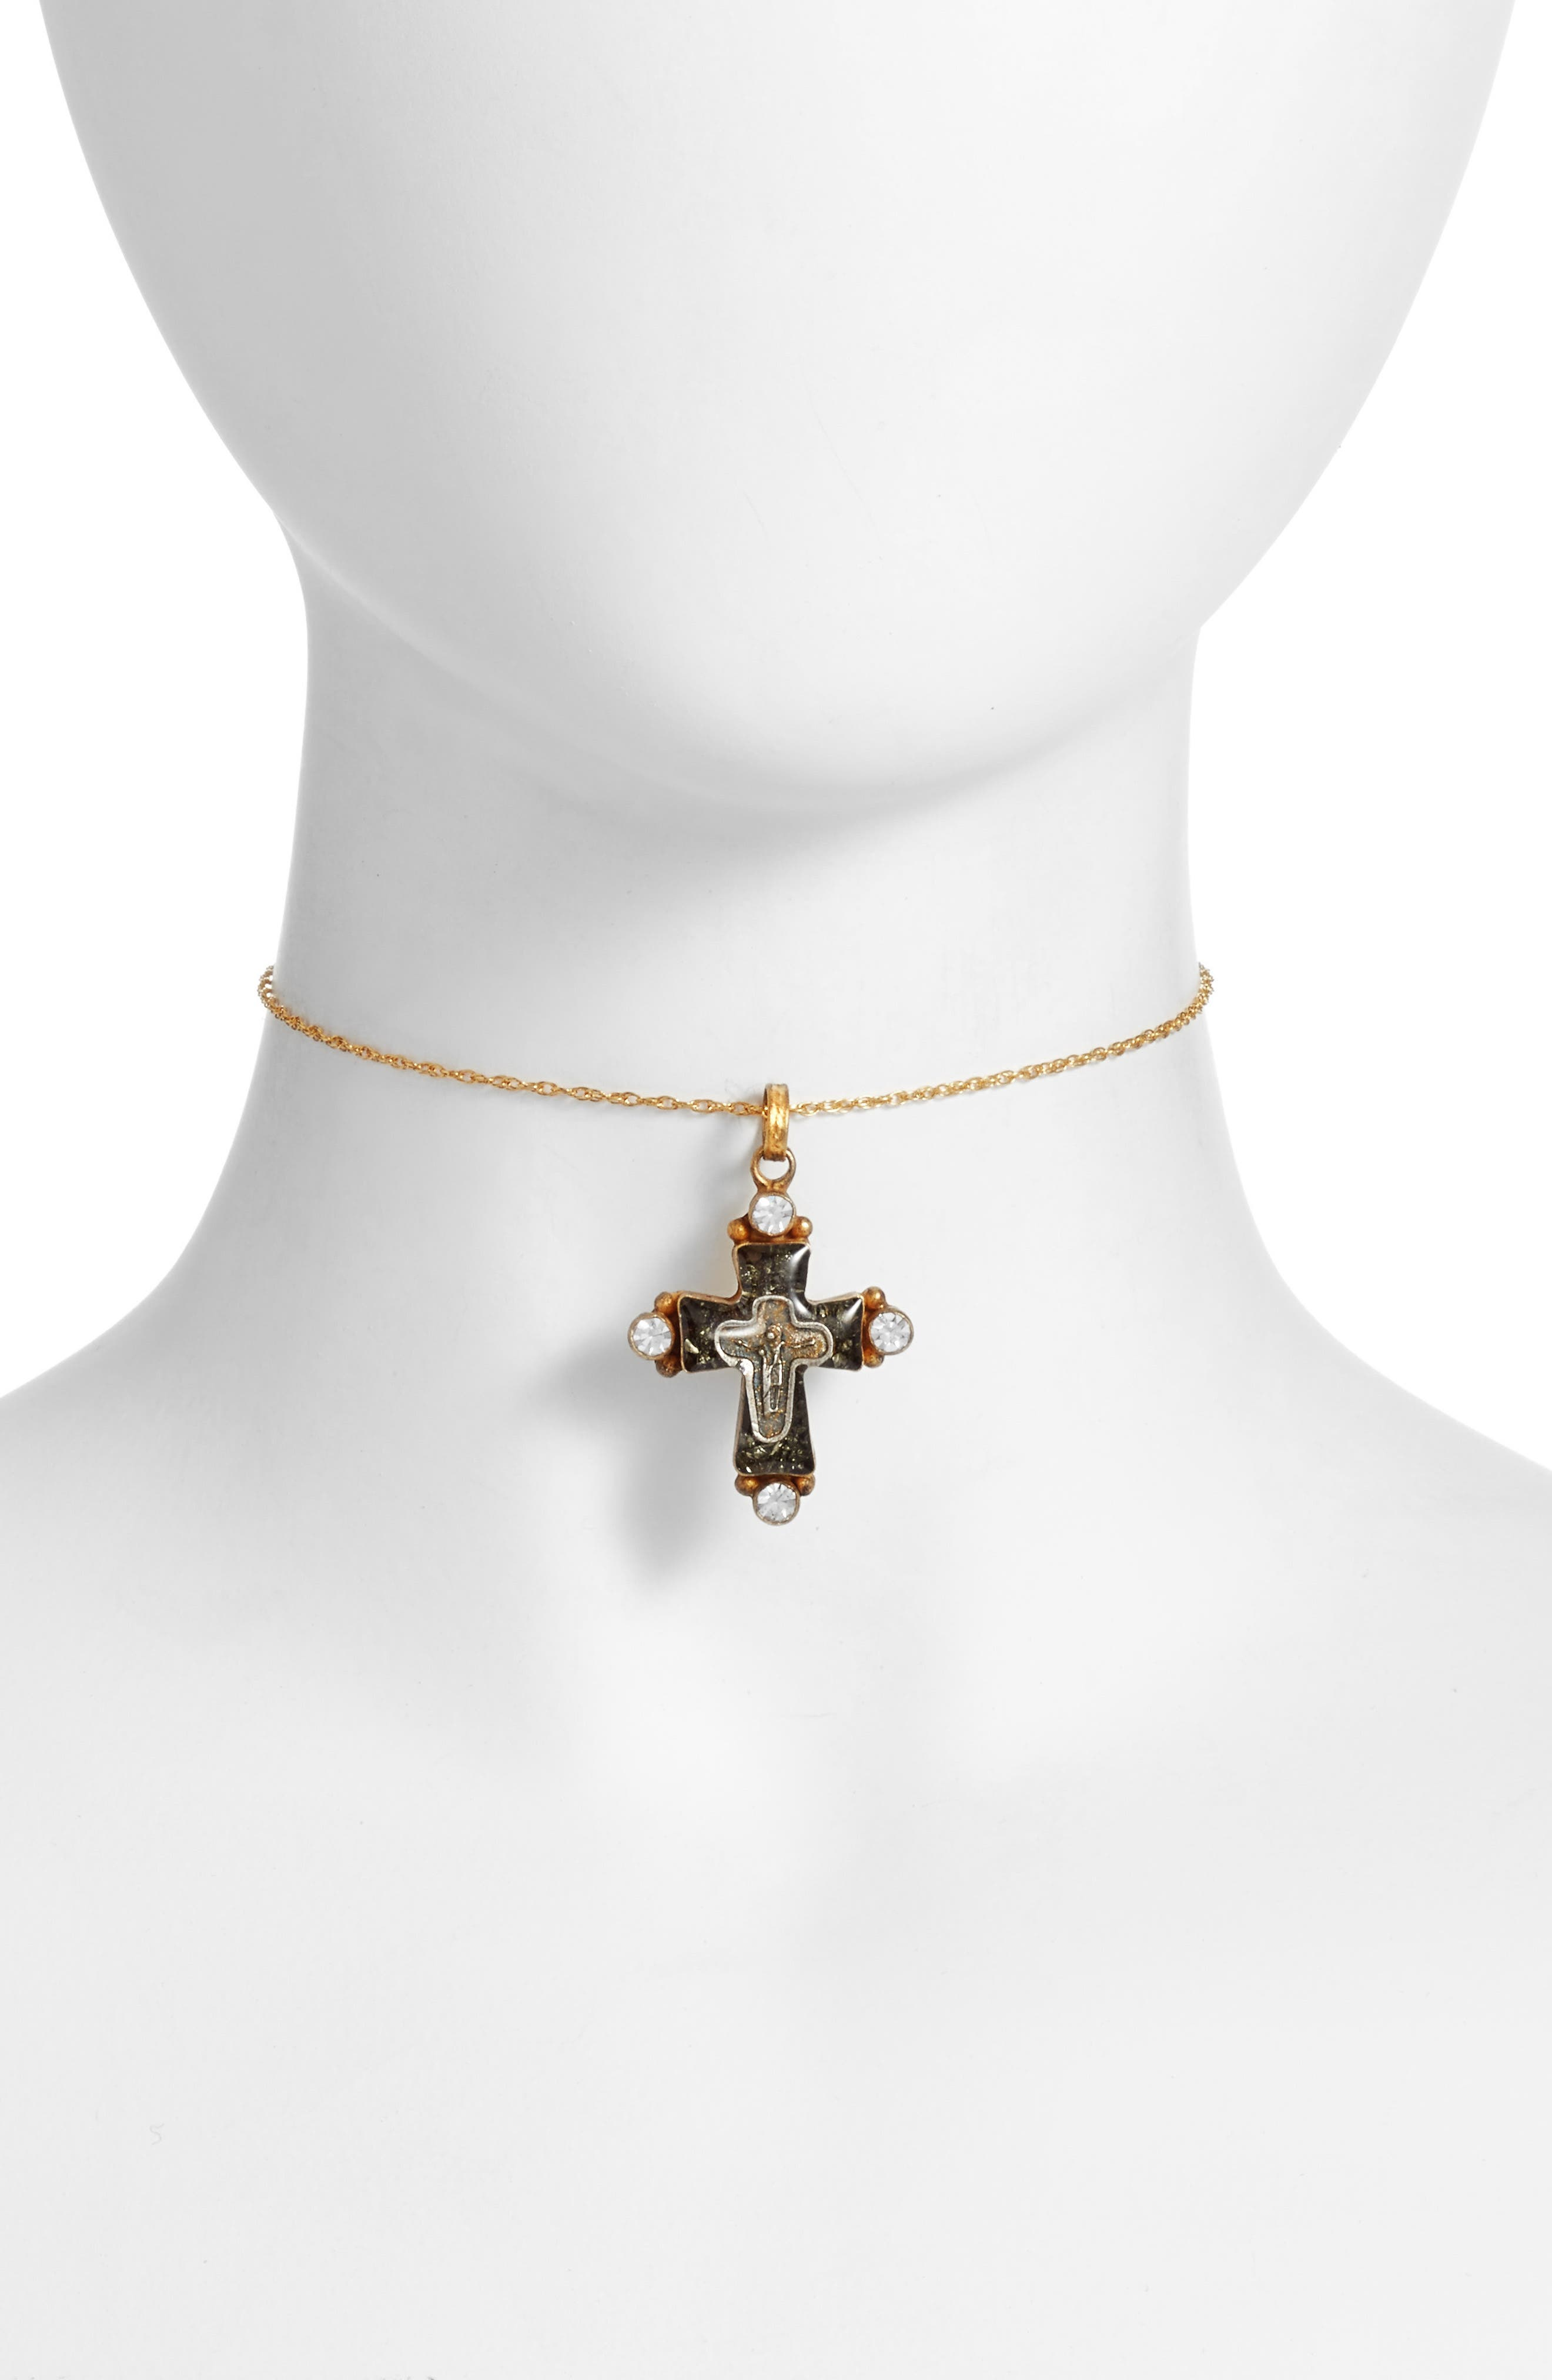 VIRGINS SAINTS & ANGELS Santa Monica Choker